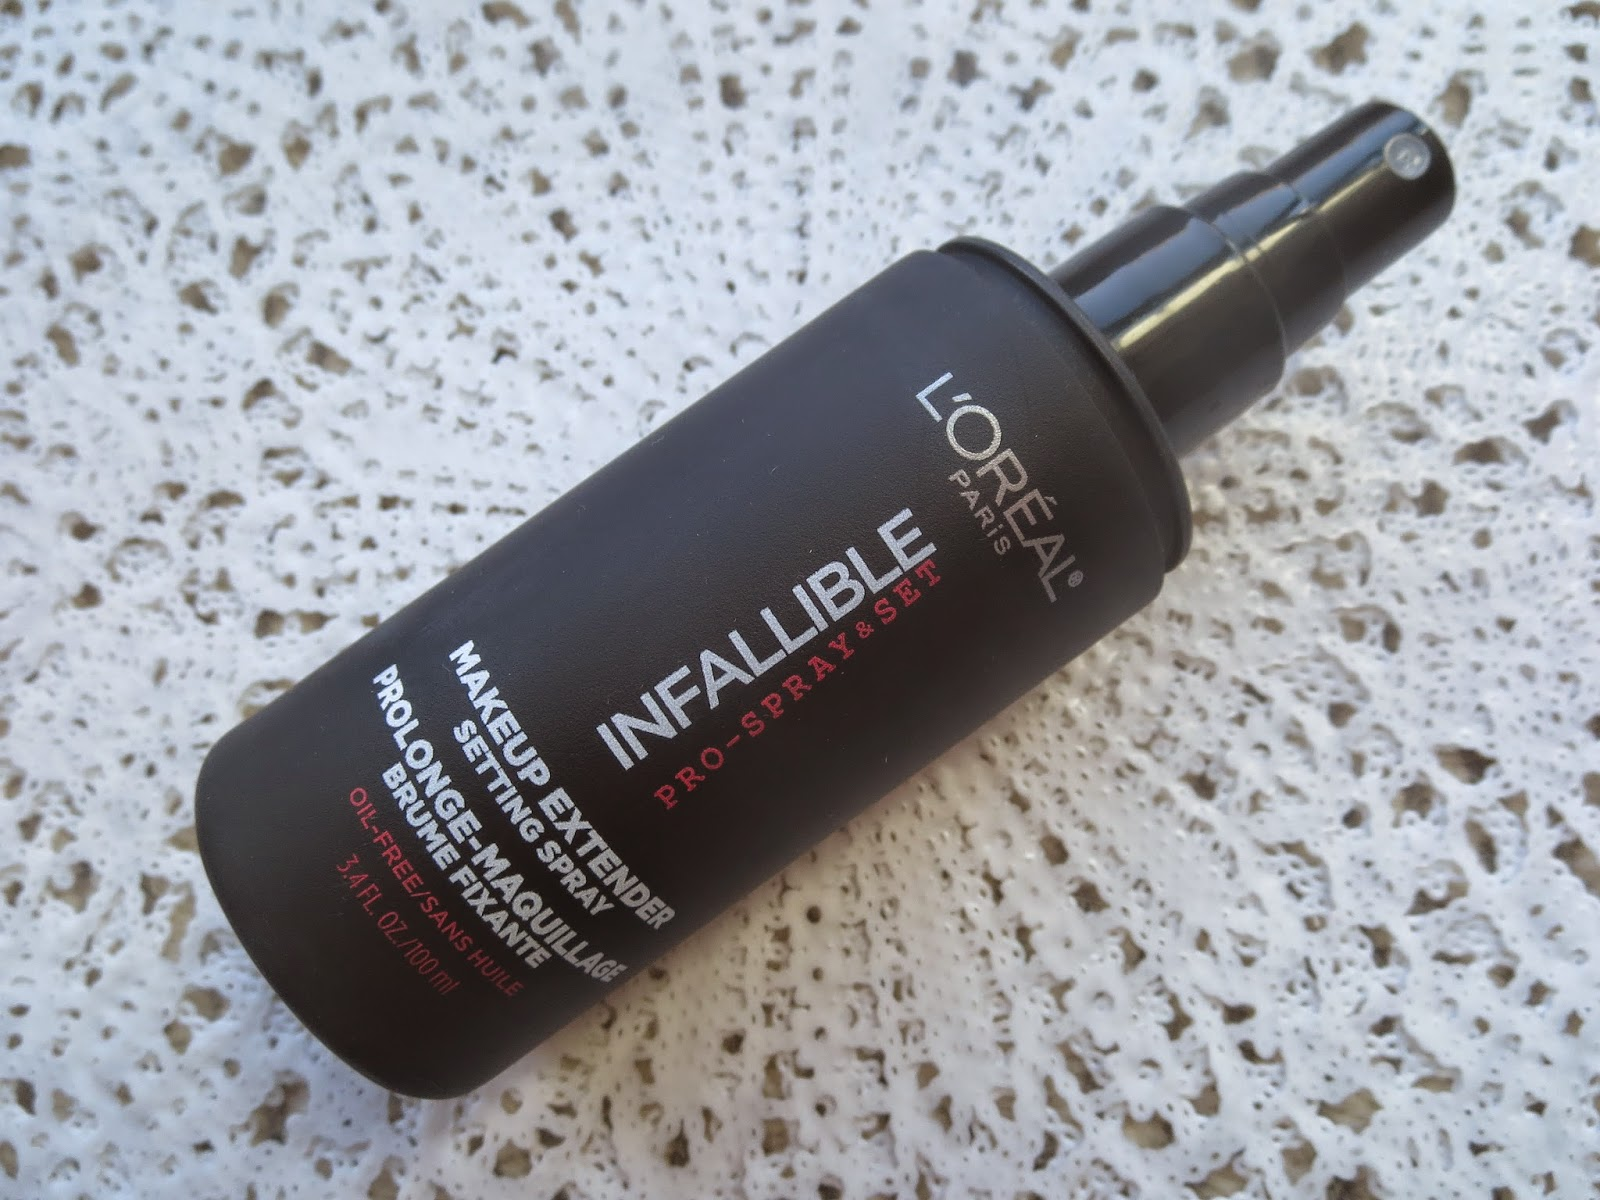 a picture of L'Oreal Infallible Pro-Spray & Set Makeup Extender Setting Spray (review)